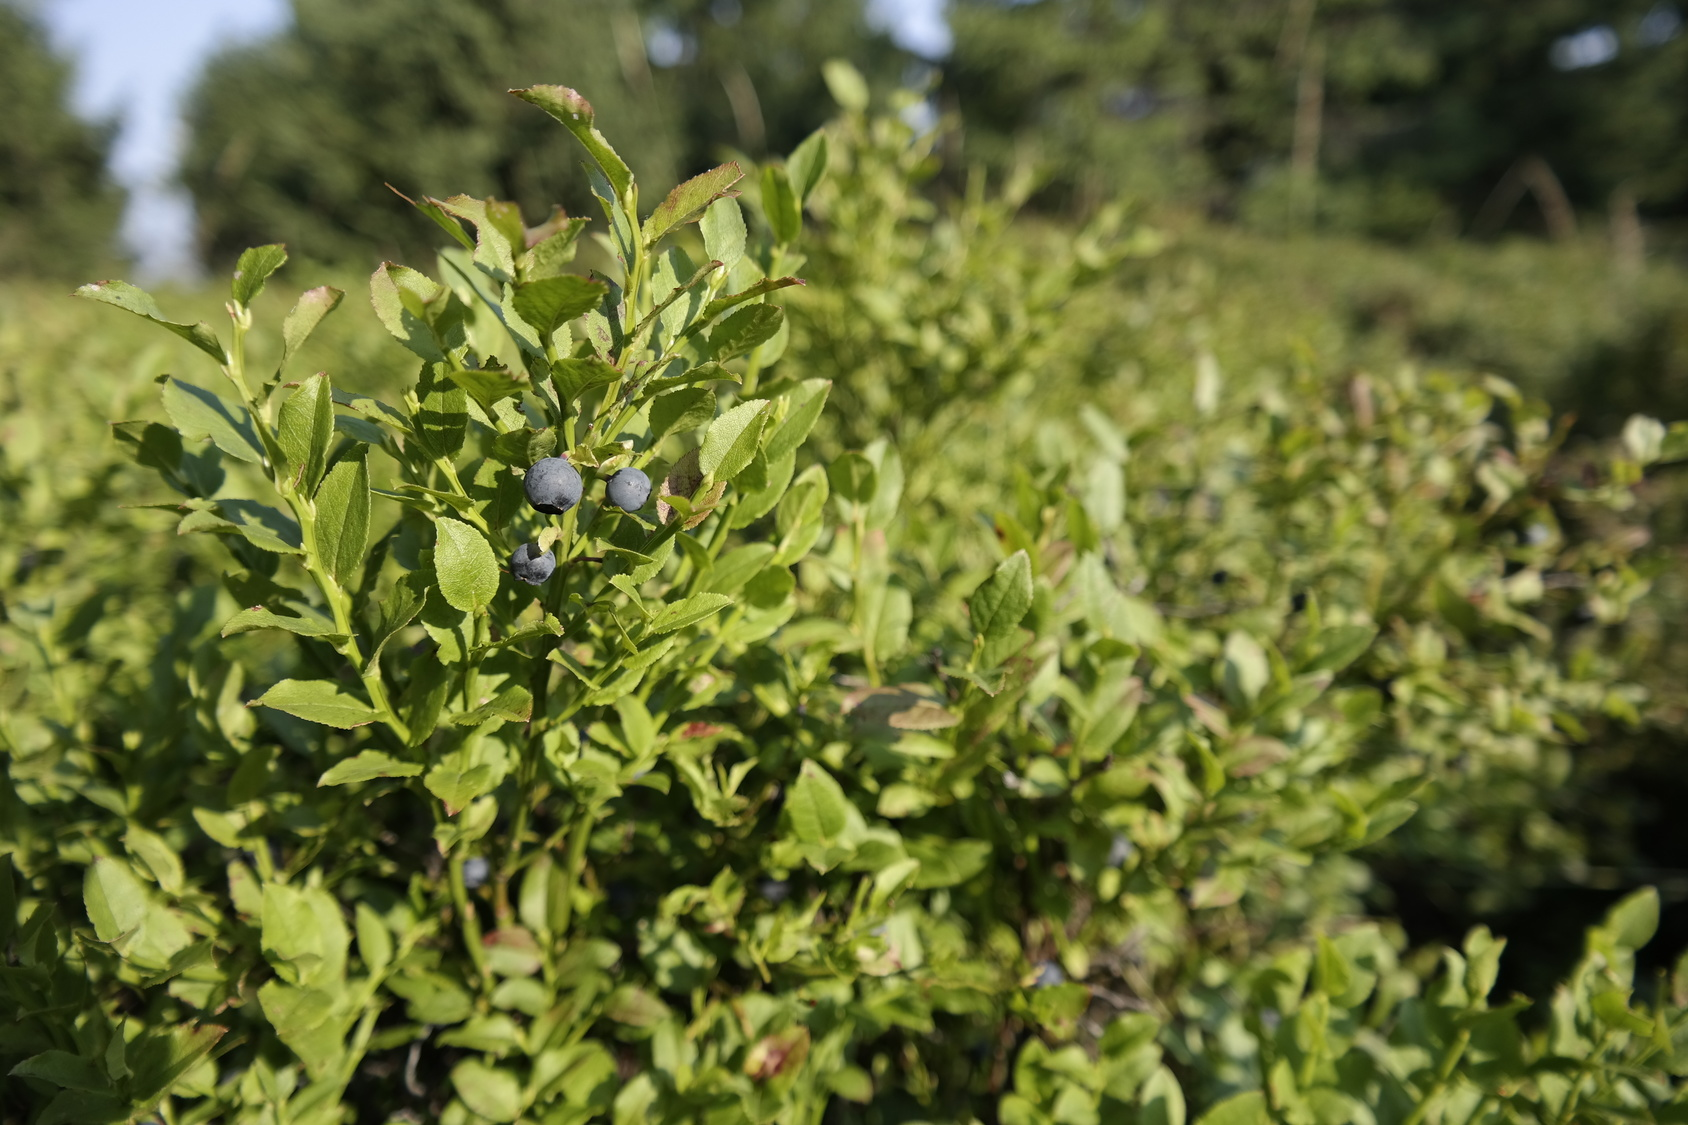 A plenty of blueberries on a blueberry bushes.